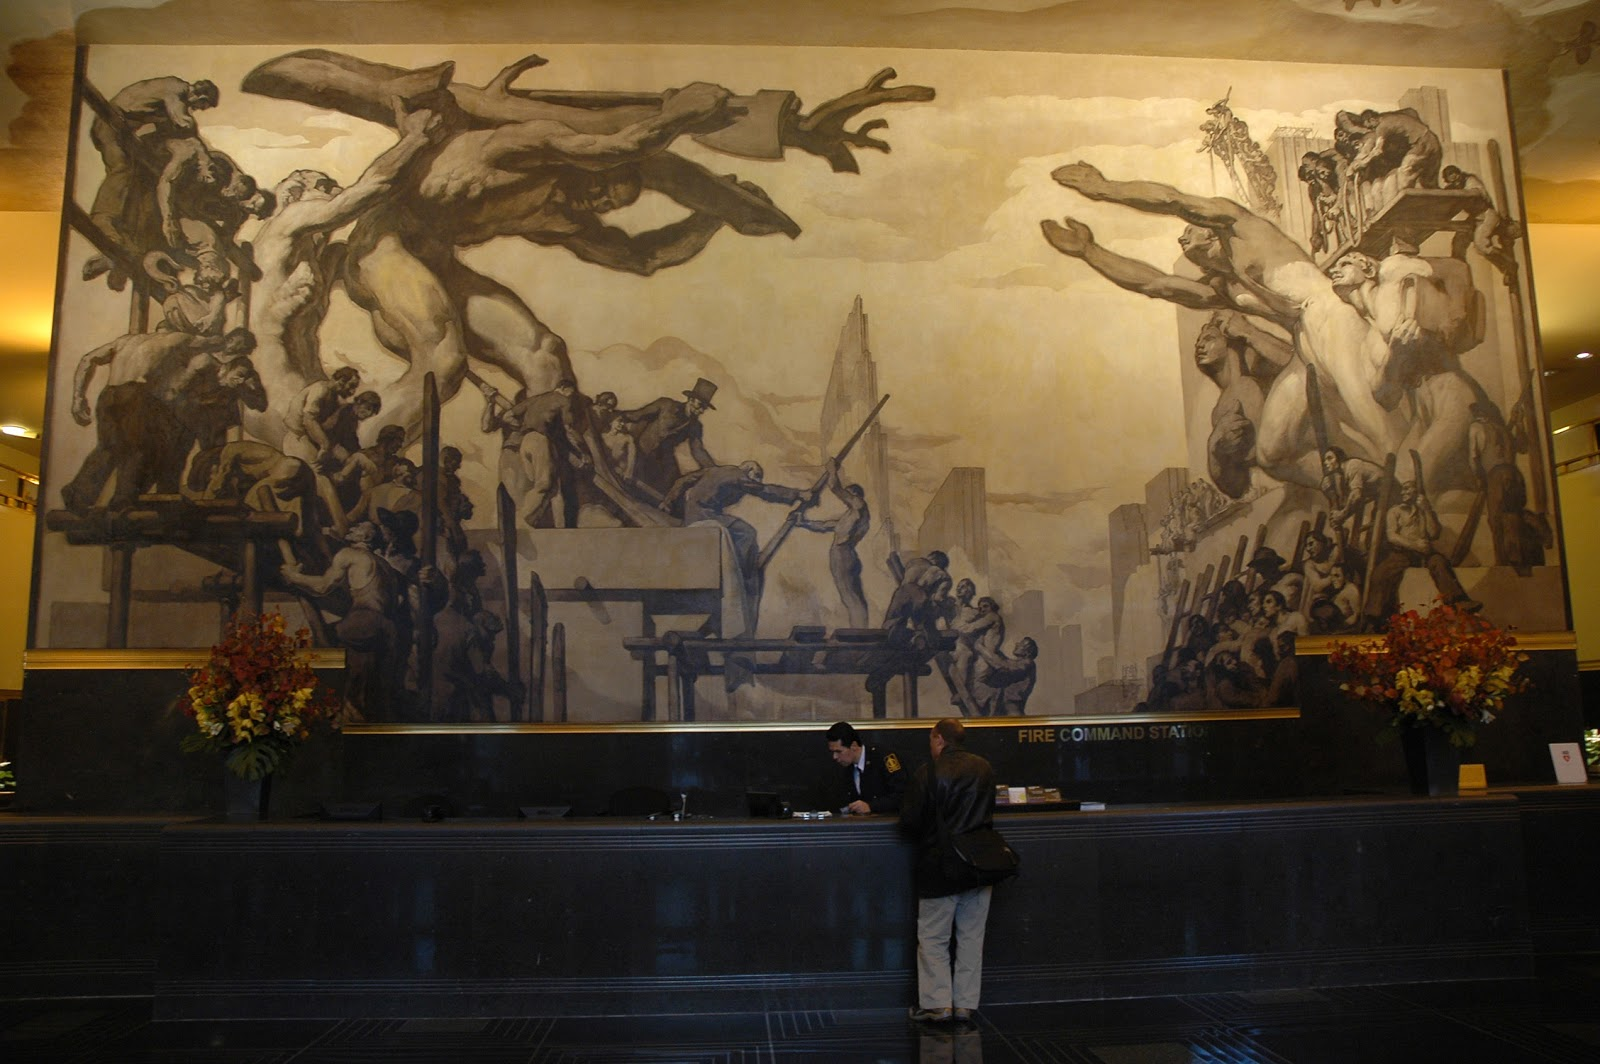 Blog from the studios of garin baker for Diego rivera mural at rockefeller center